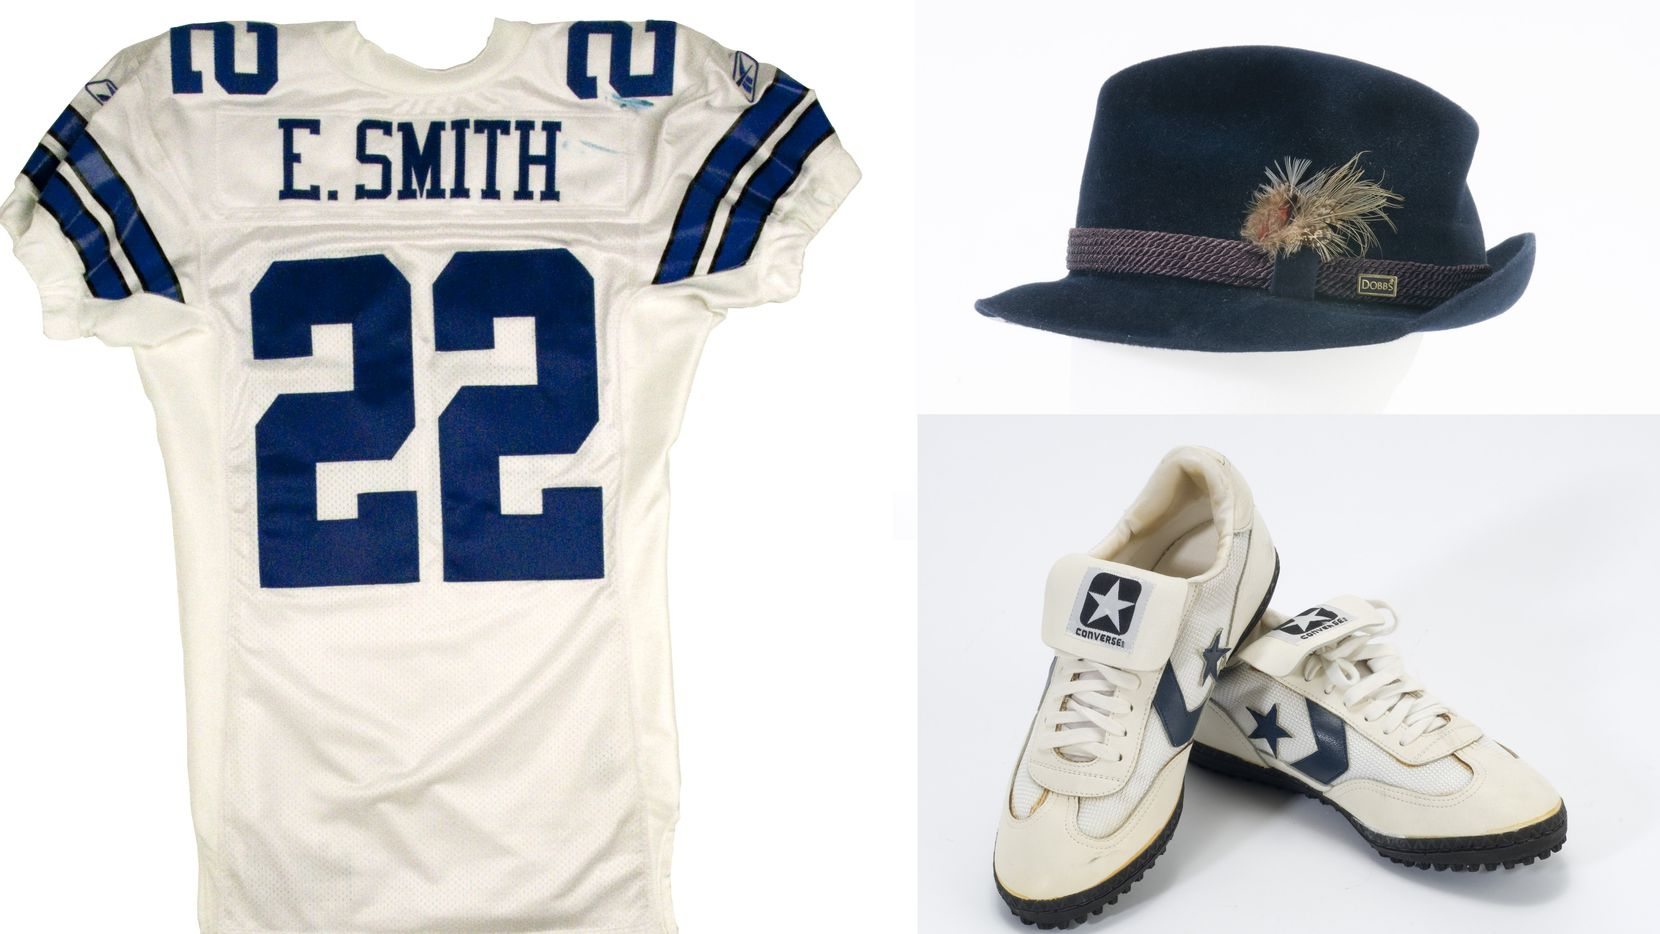 The jersey Emmitt Smith wore when he broke Walter Payton's all-time rushing record, Tony Dorsett's cleats from his record 99-yard touchdown run in 1983 and a Tom Landry trademark fedoras on display at the Pro Football Hall of Fame.